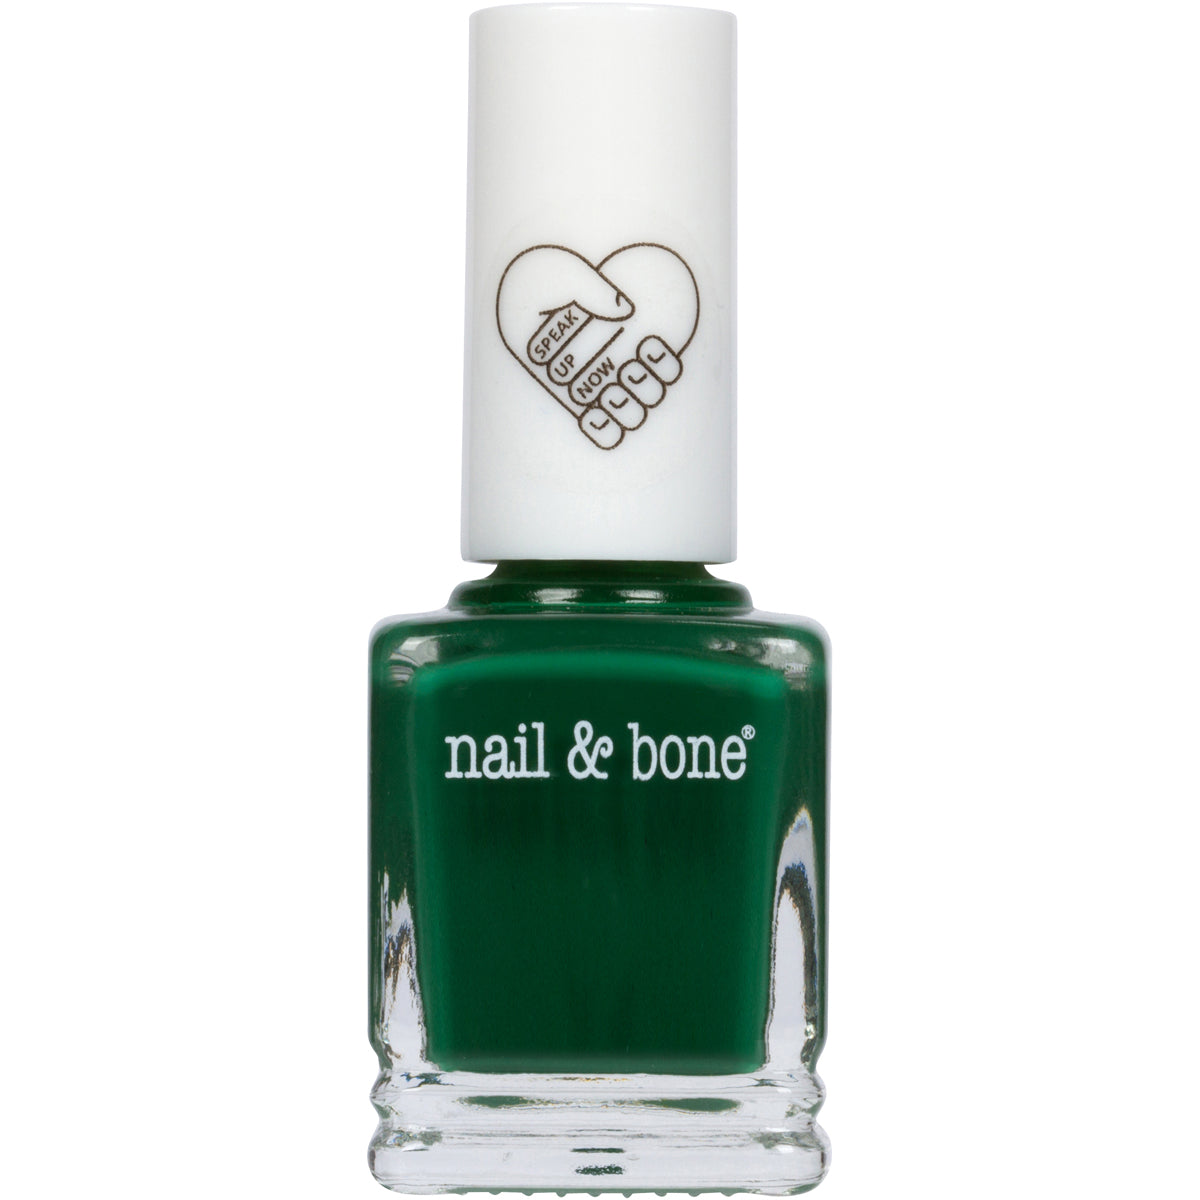 Kush  | Nail Polish |  |  8 Free | Green | Vegan | Noah Cyrus | My Friend's Place | GetUsPPE